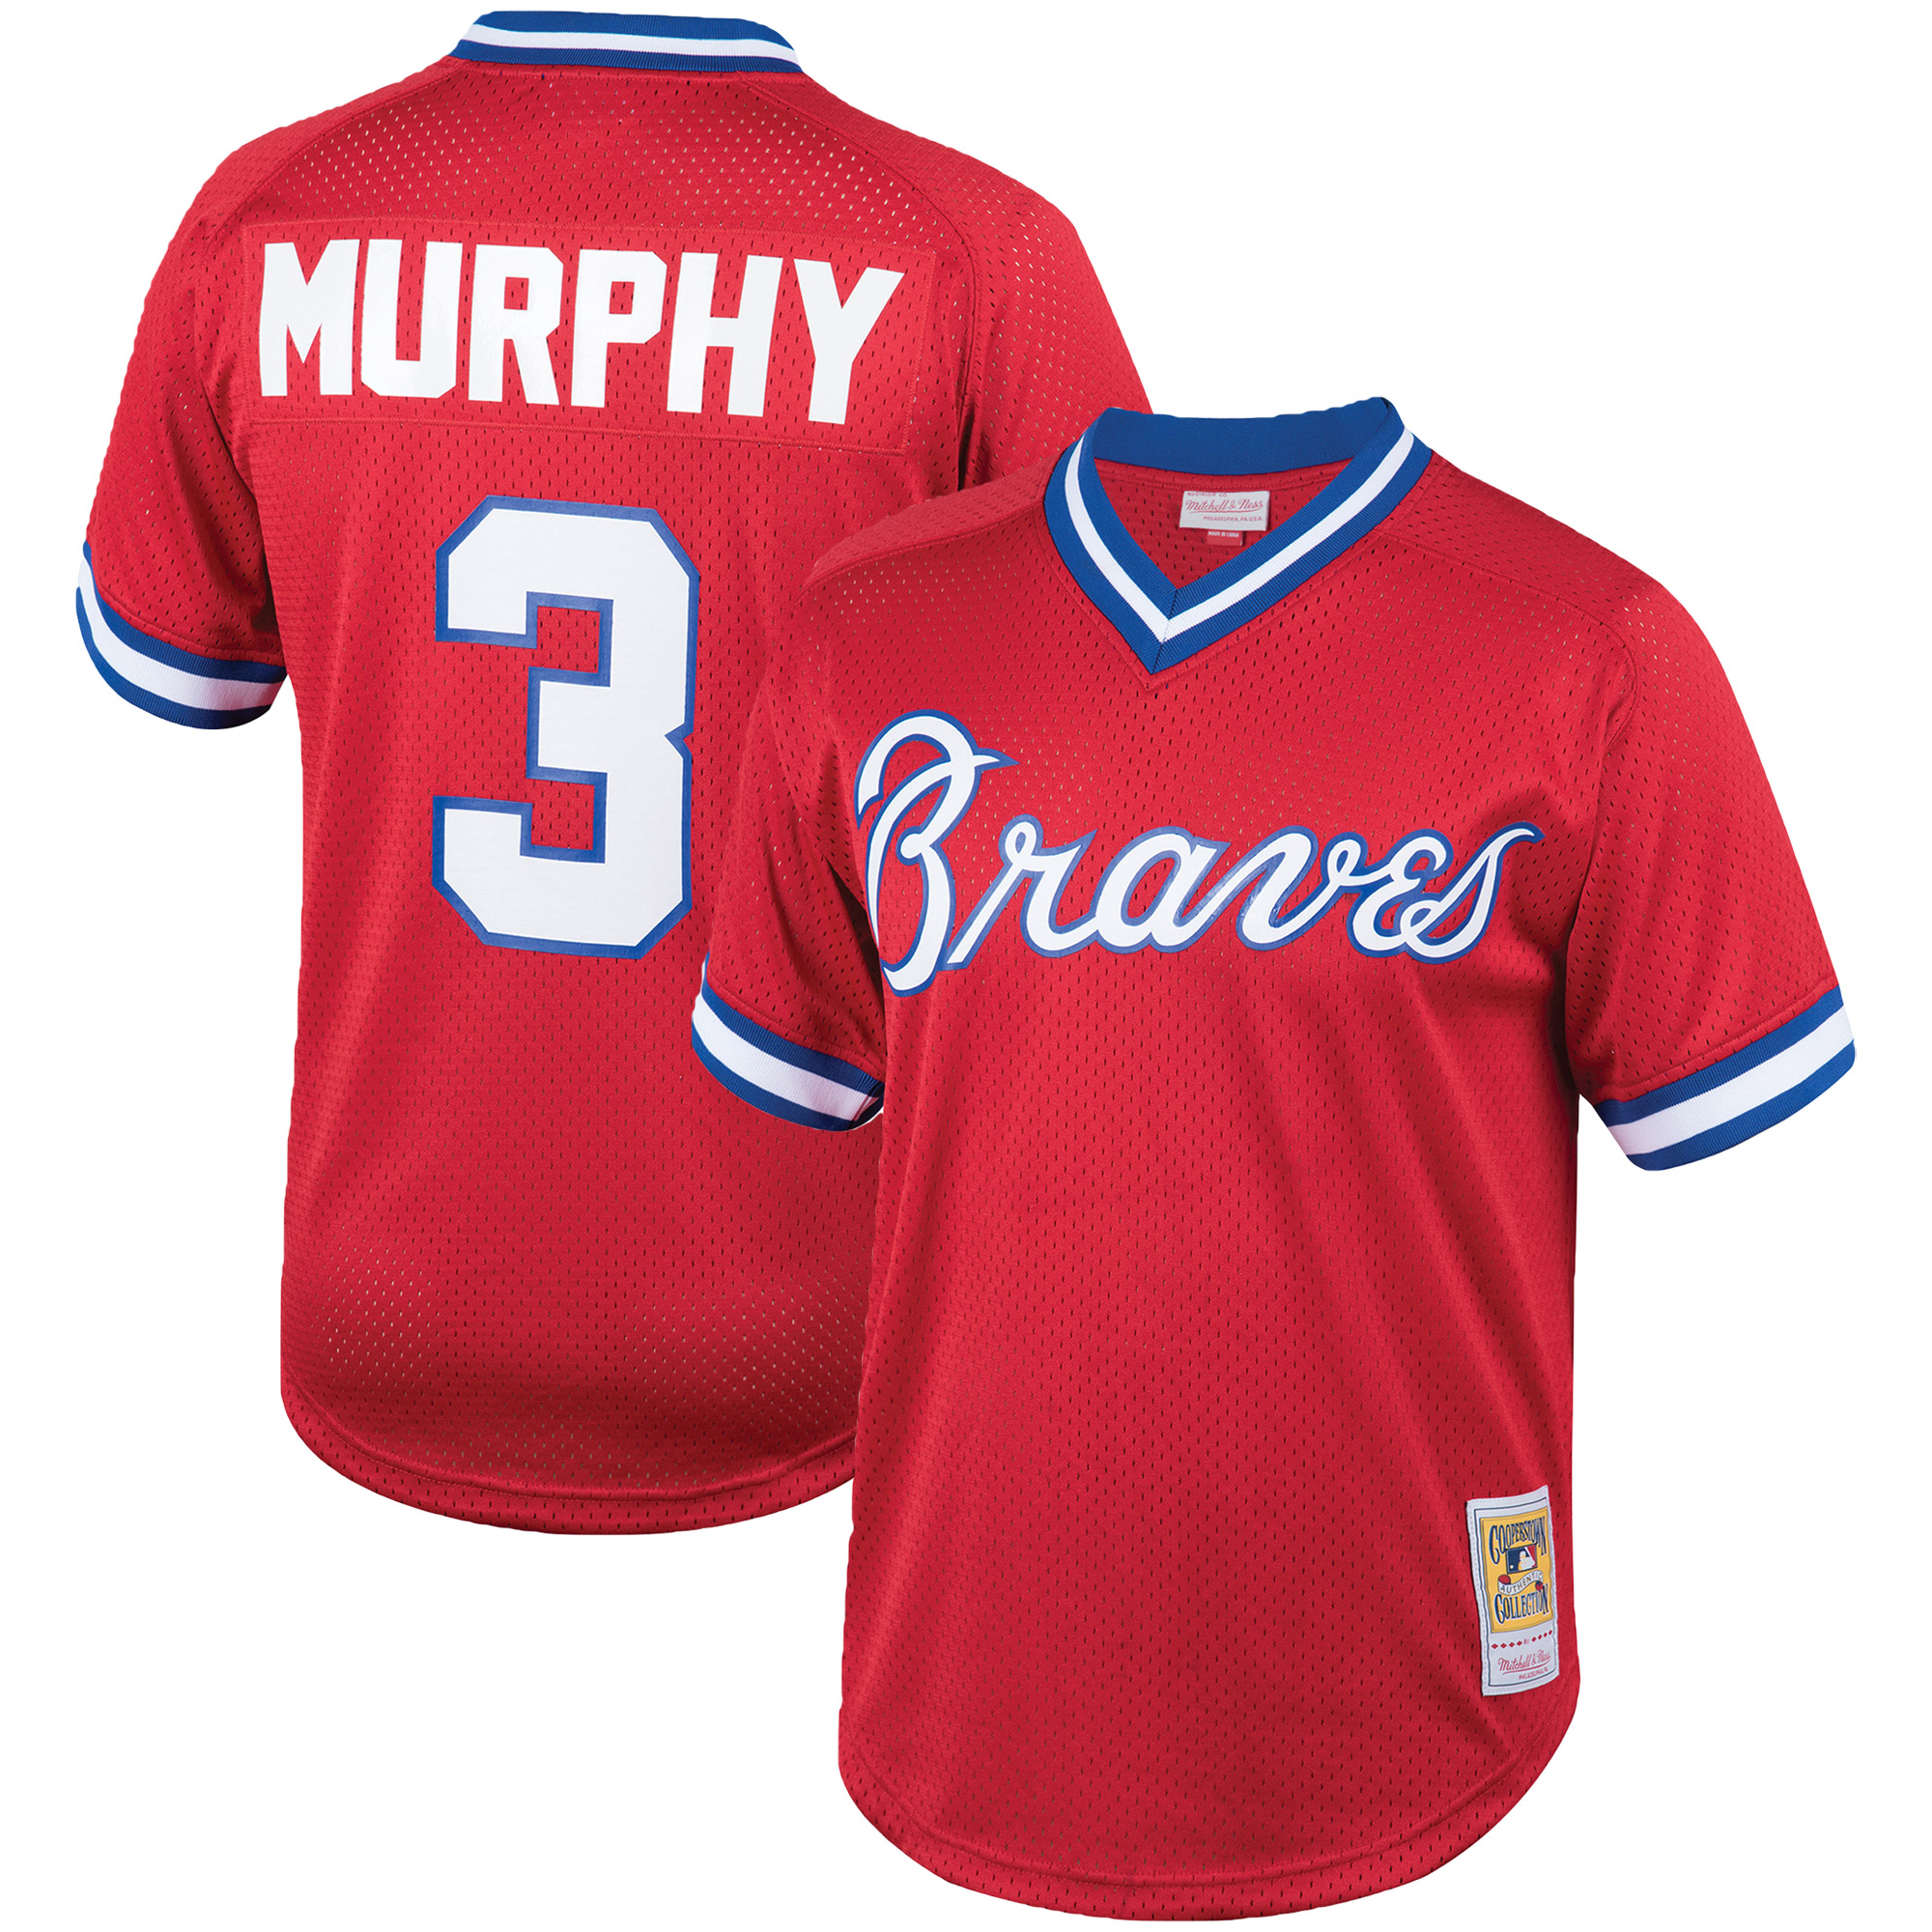 Dale Murphy Atlanta Braves Mitchell & Ness Cooperstown Collection Mesh Batting Practice Jersey - Red